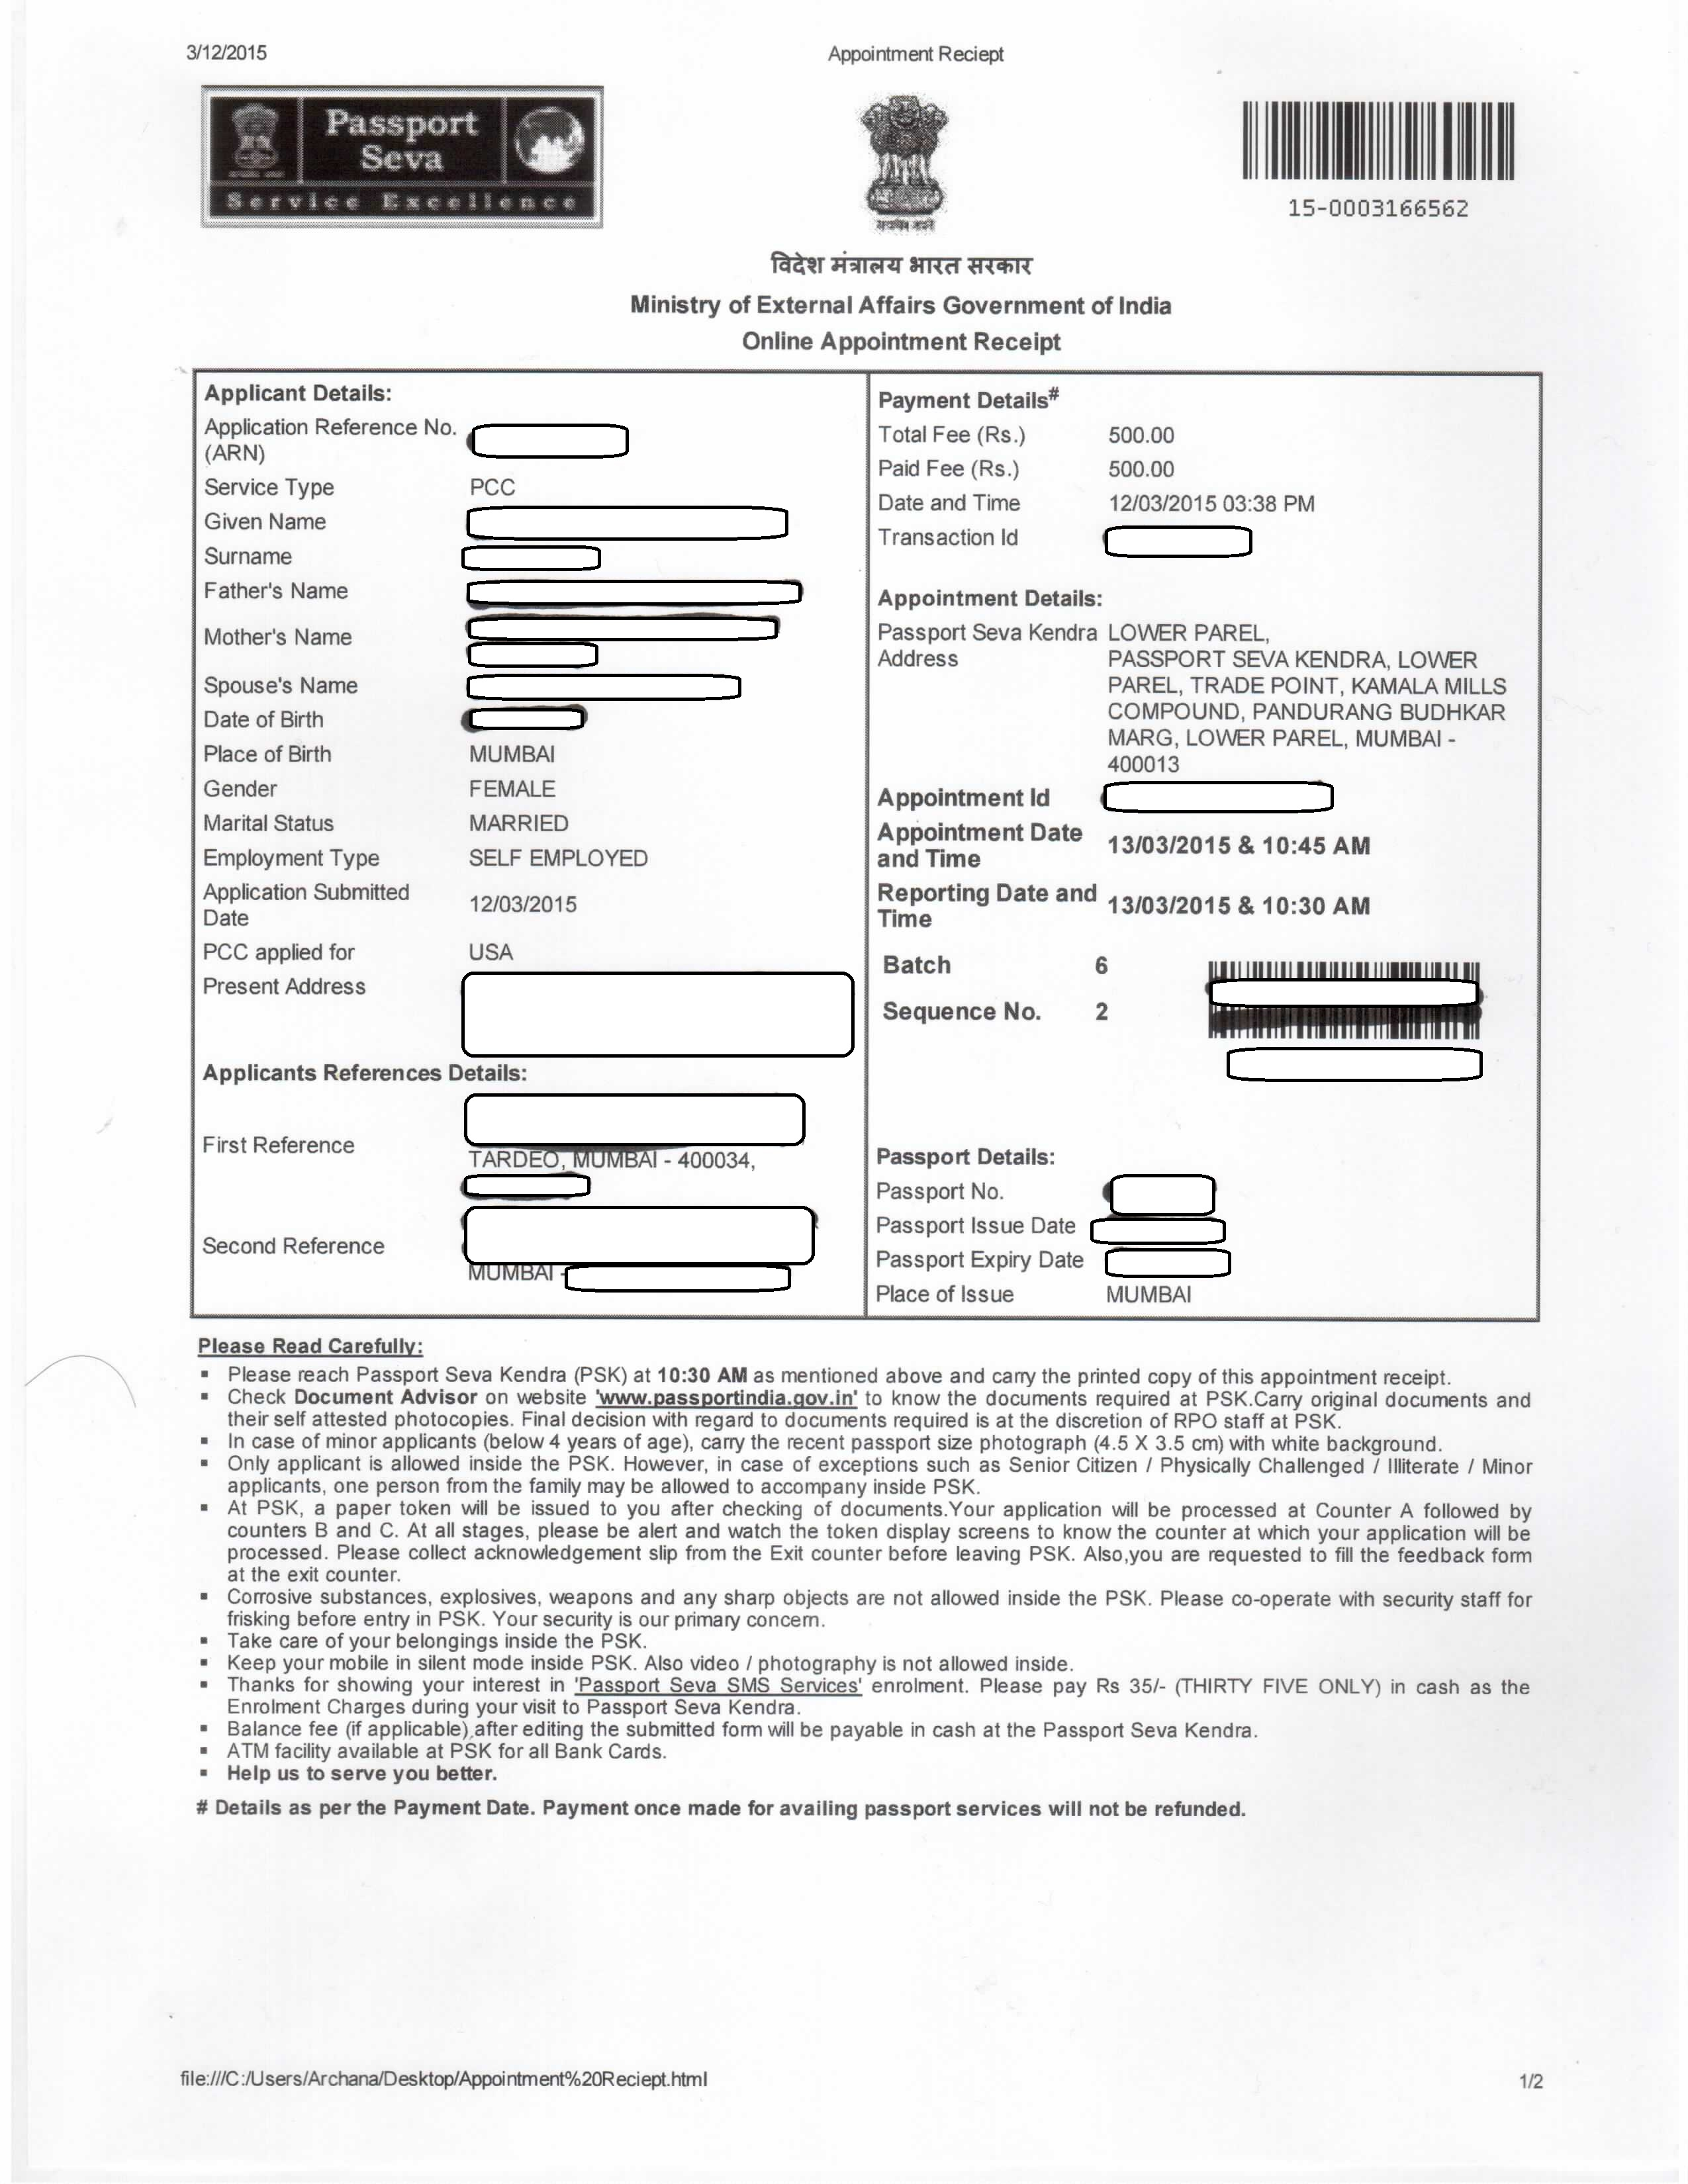 Passport seva services for police clearance certificate what a receiptfor pcc receipt for police clearance certificate xflitez Image collections